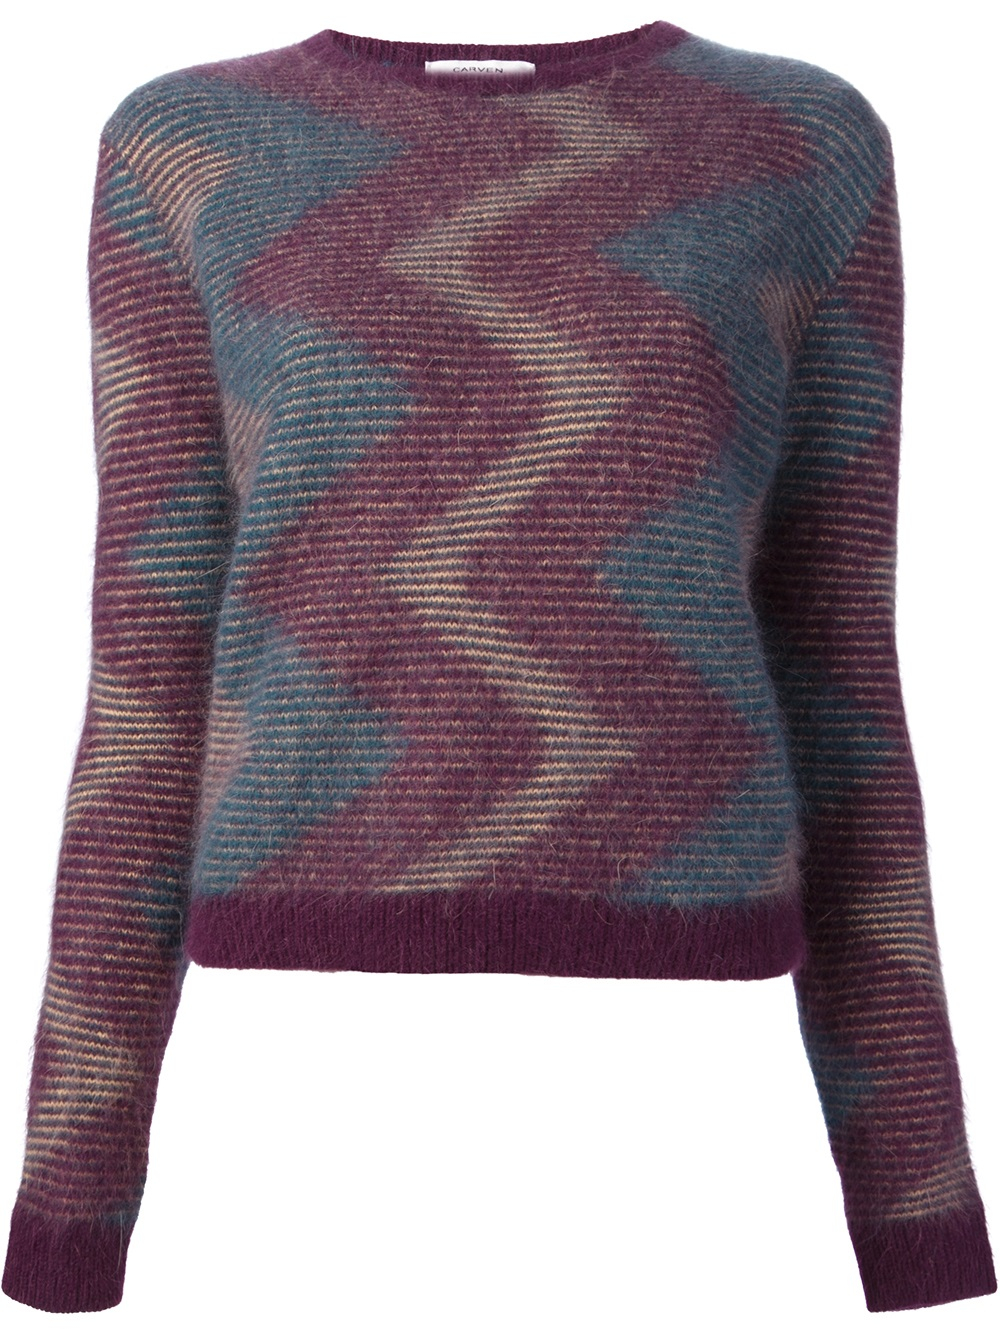 Knit Sweater With Zig Zag Pattern : Lyst carven zig zag pattern sweater in purple